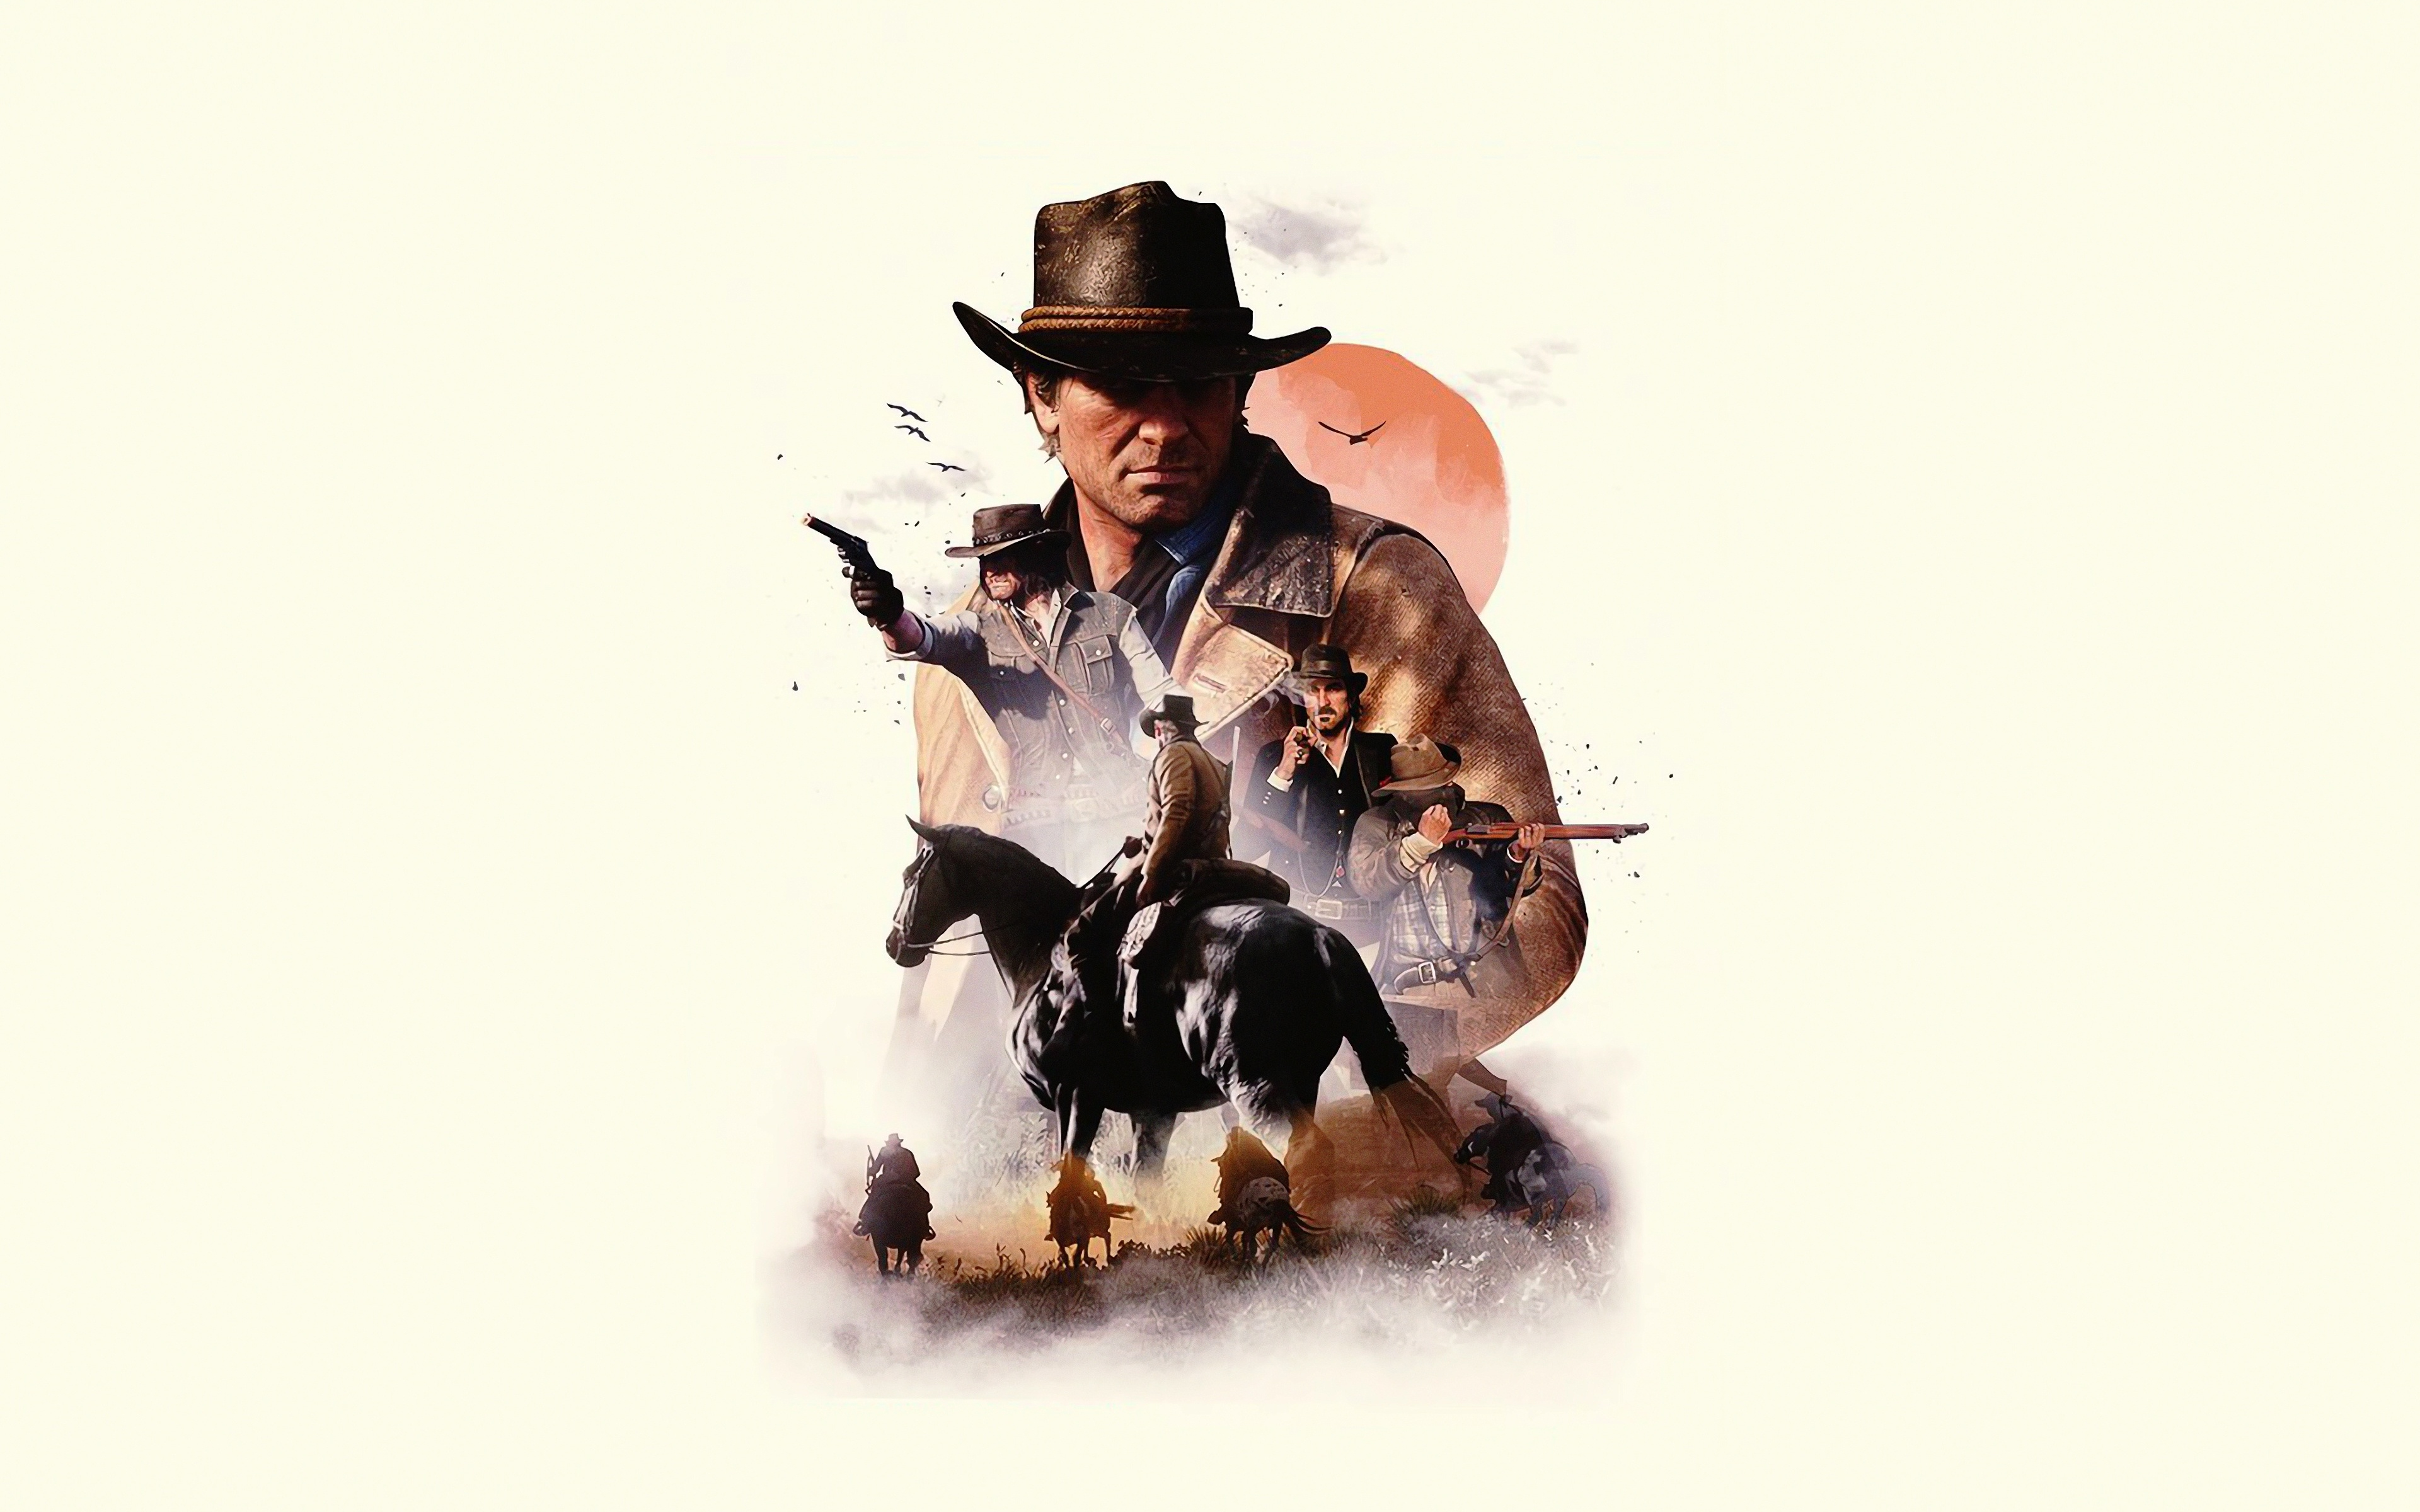 Download 3840x2400 Wallpaper Video Game Poster Red Dead